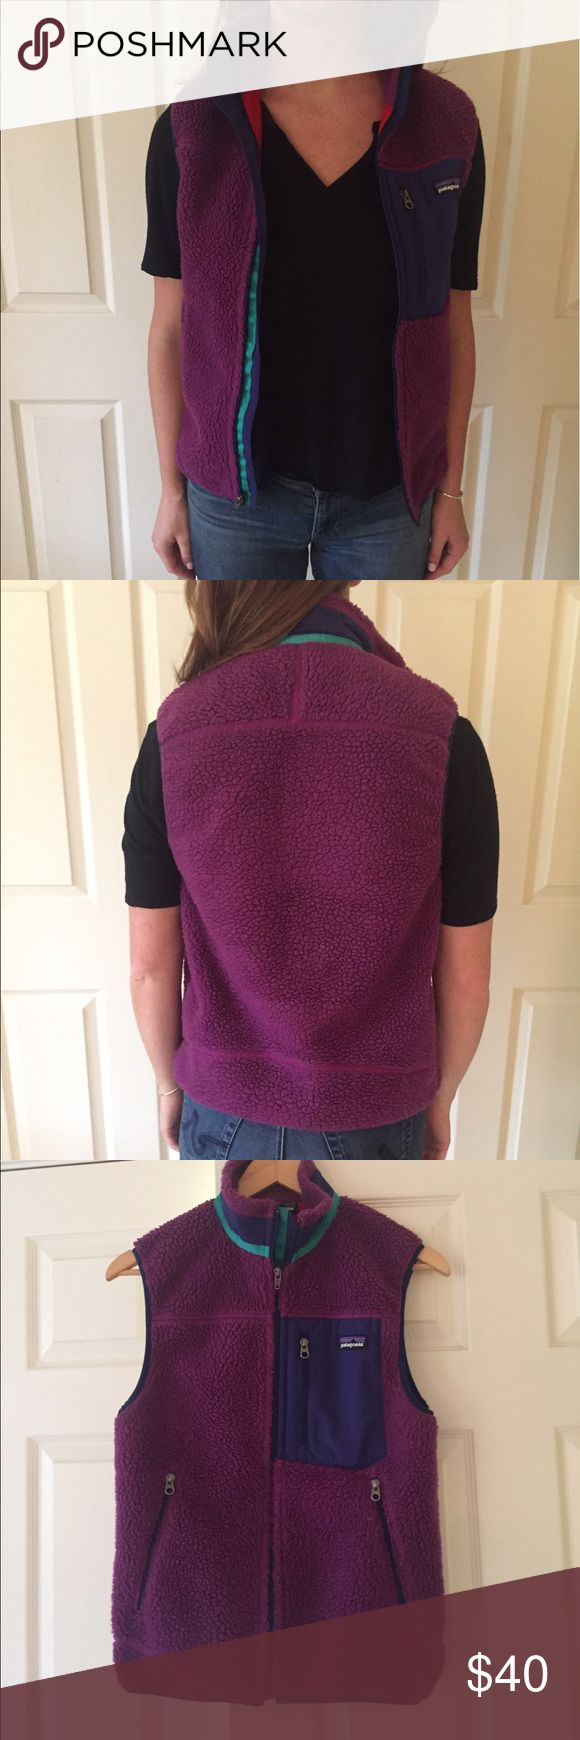 Patagonia vest X-small men's fleece Patagonia vest in purple with teal and navy blue accents. Super comfortable, light wear. Unisex. Patagonia Jackets & Coats Vests